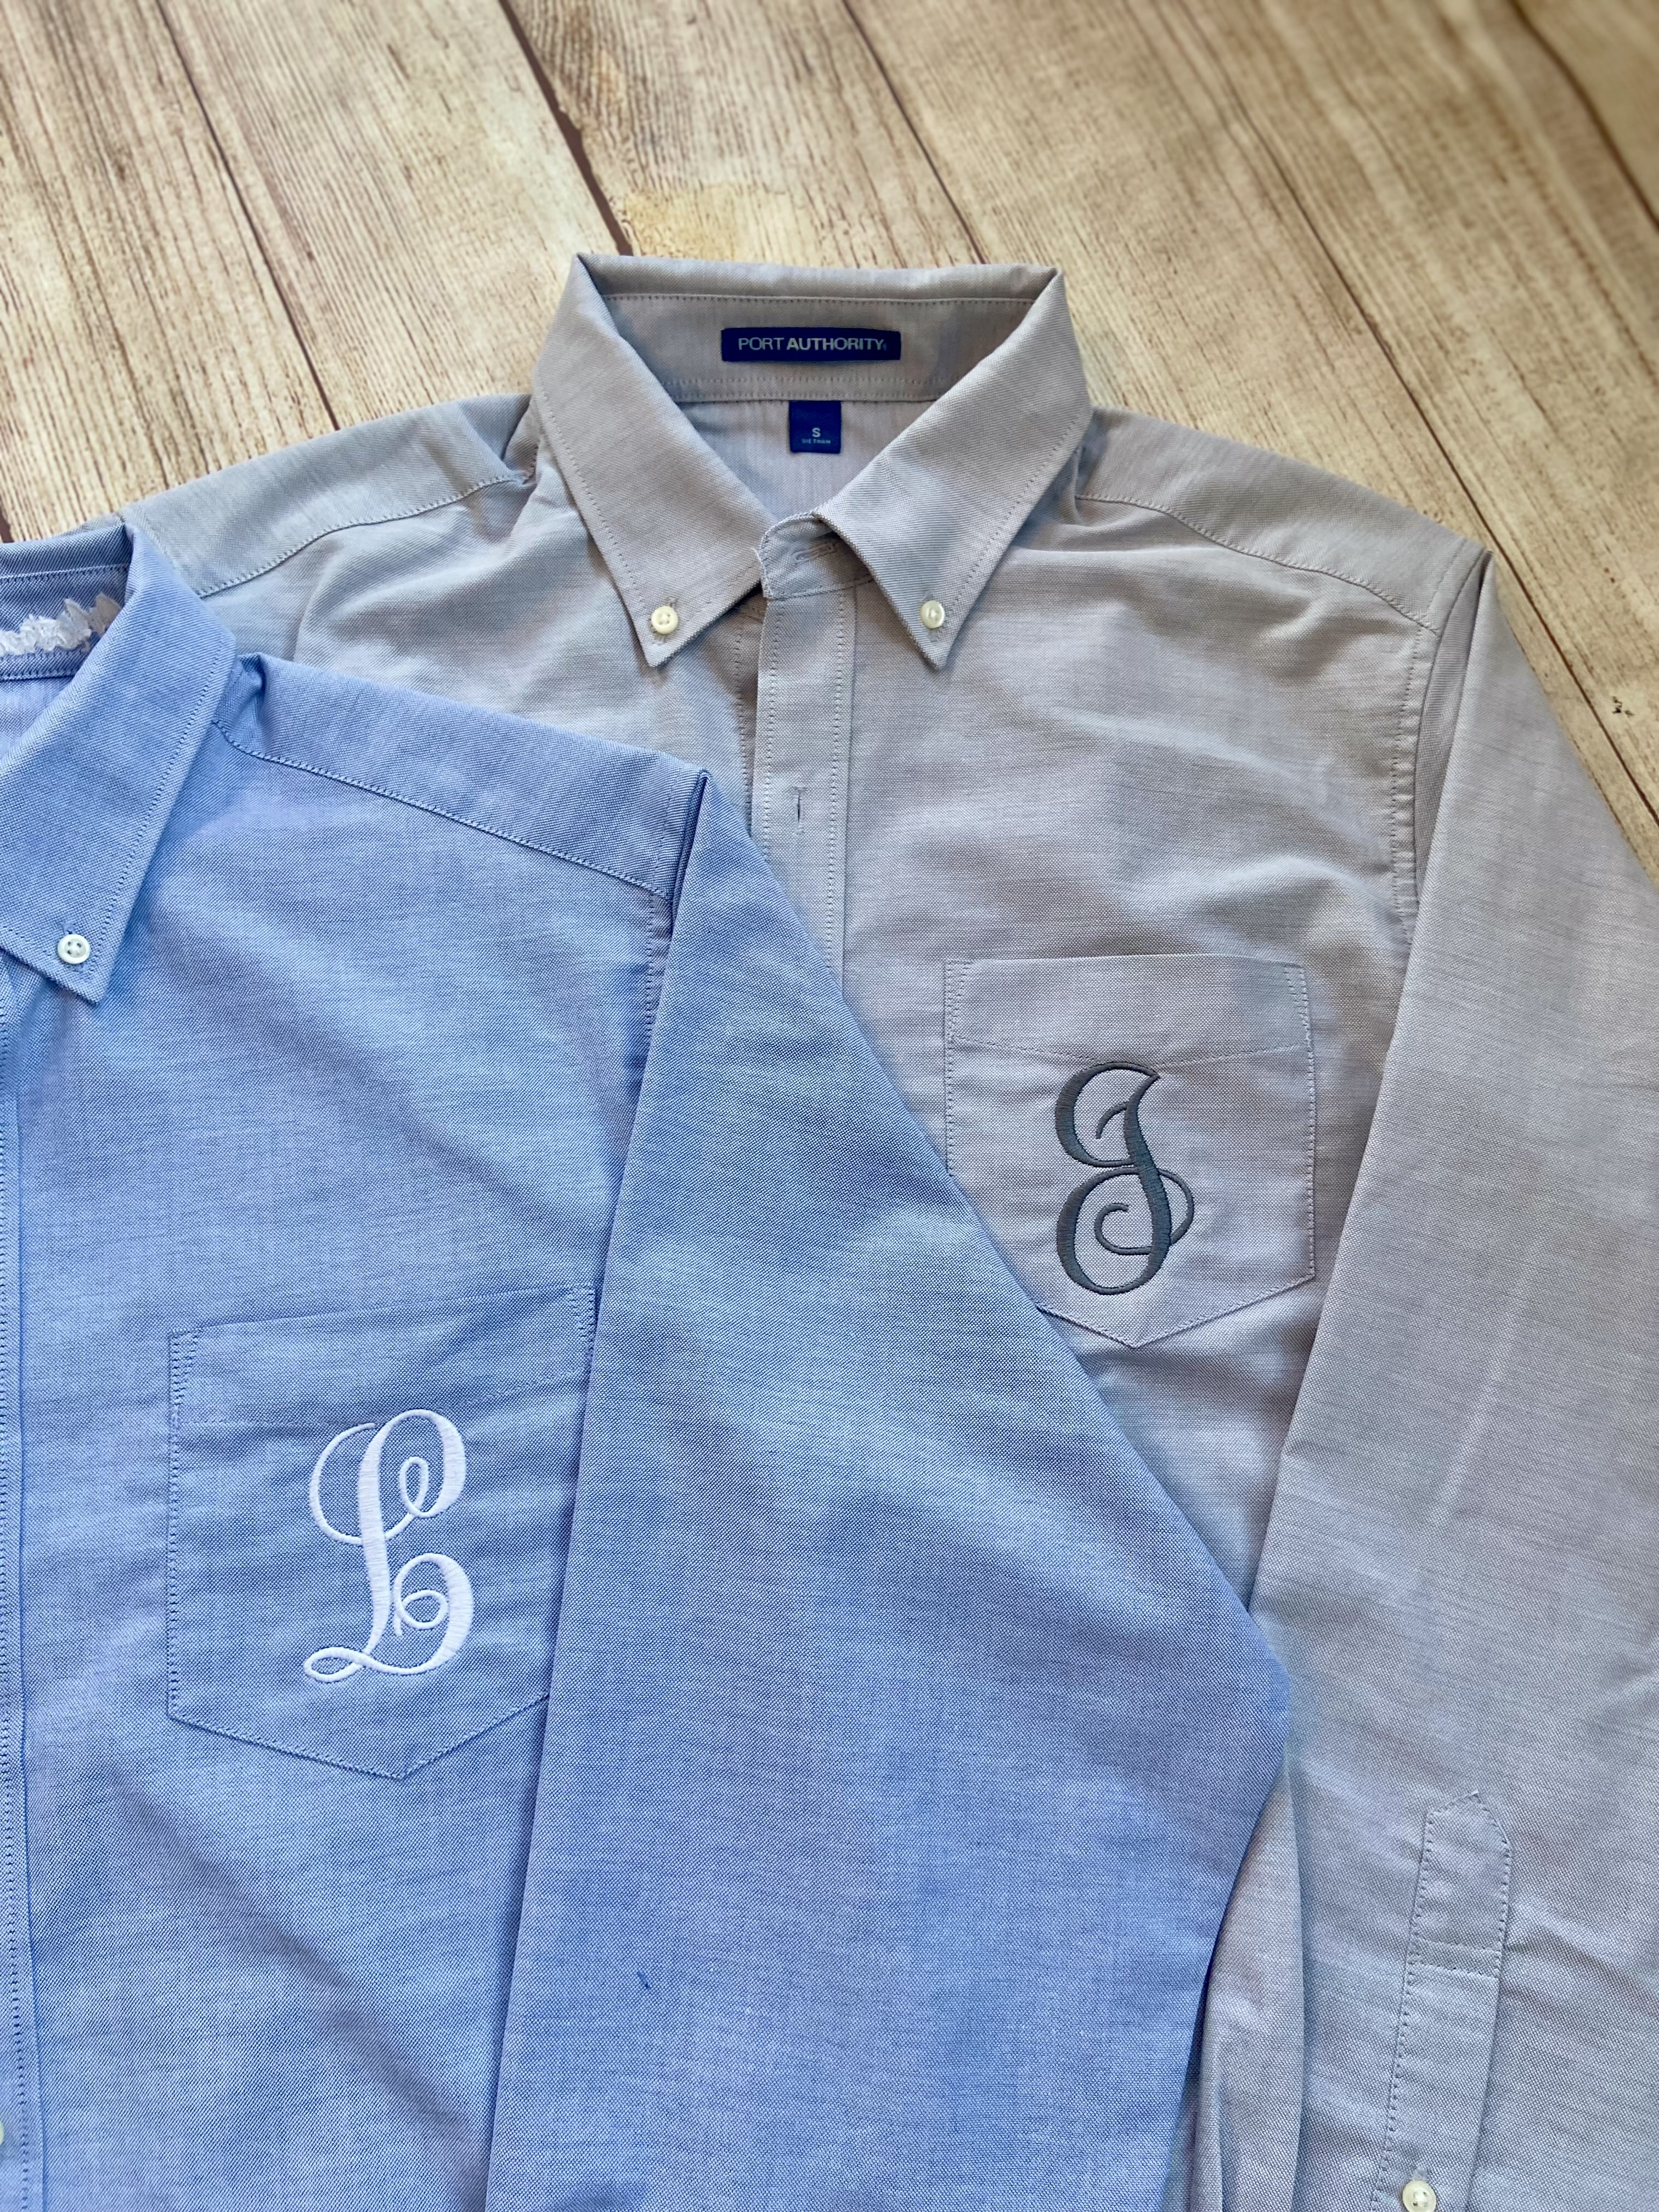 Light blue and gray Monogram Oxford by Wicked Stitches